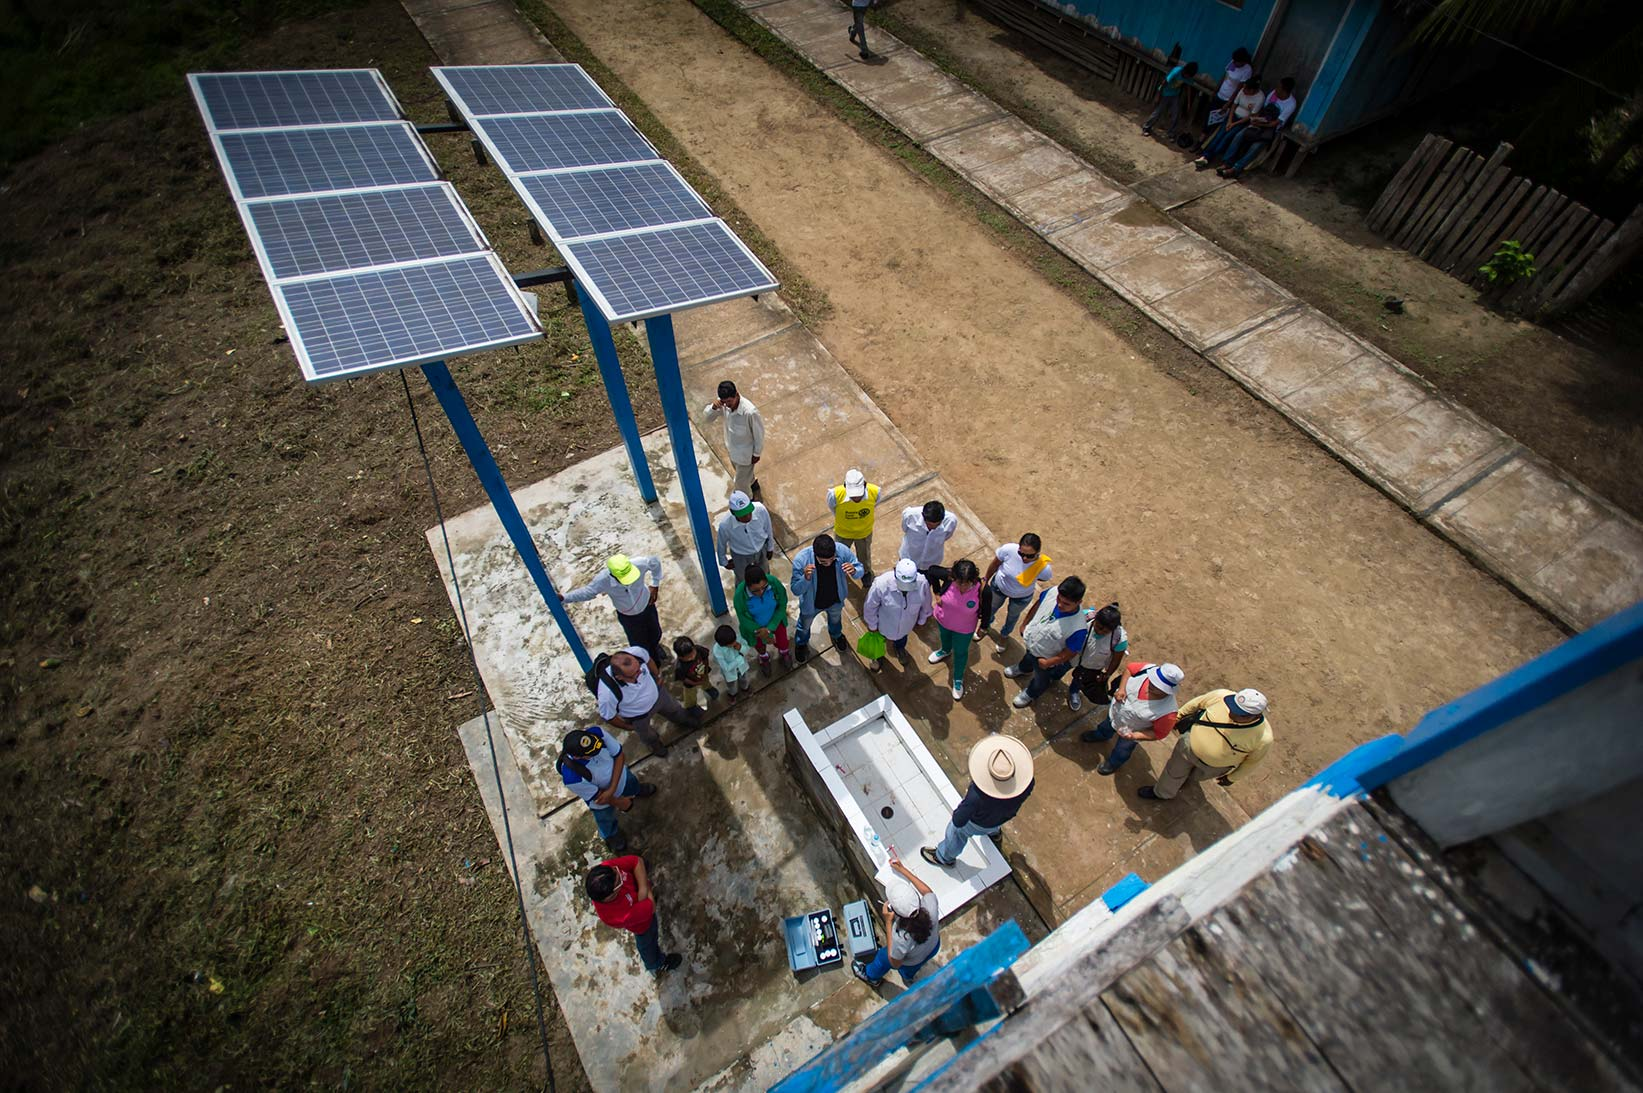 Solar panels power the safe water treatment system for Segundo and his family.